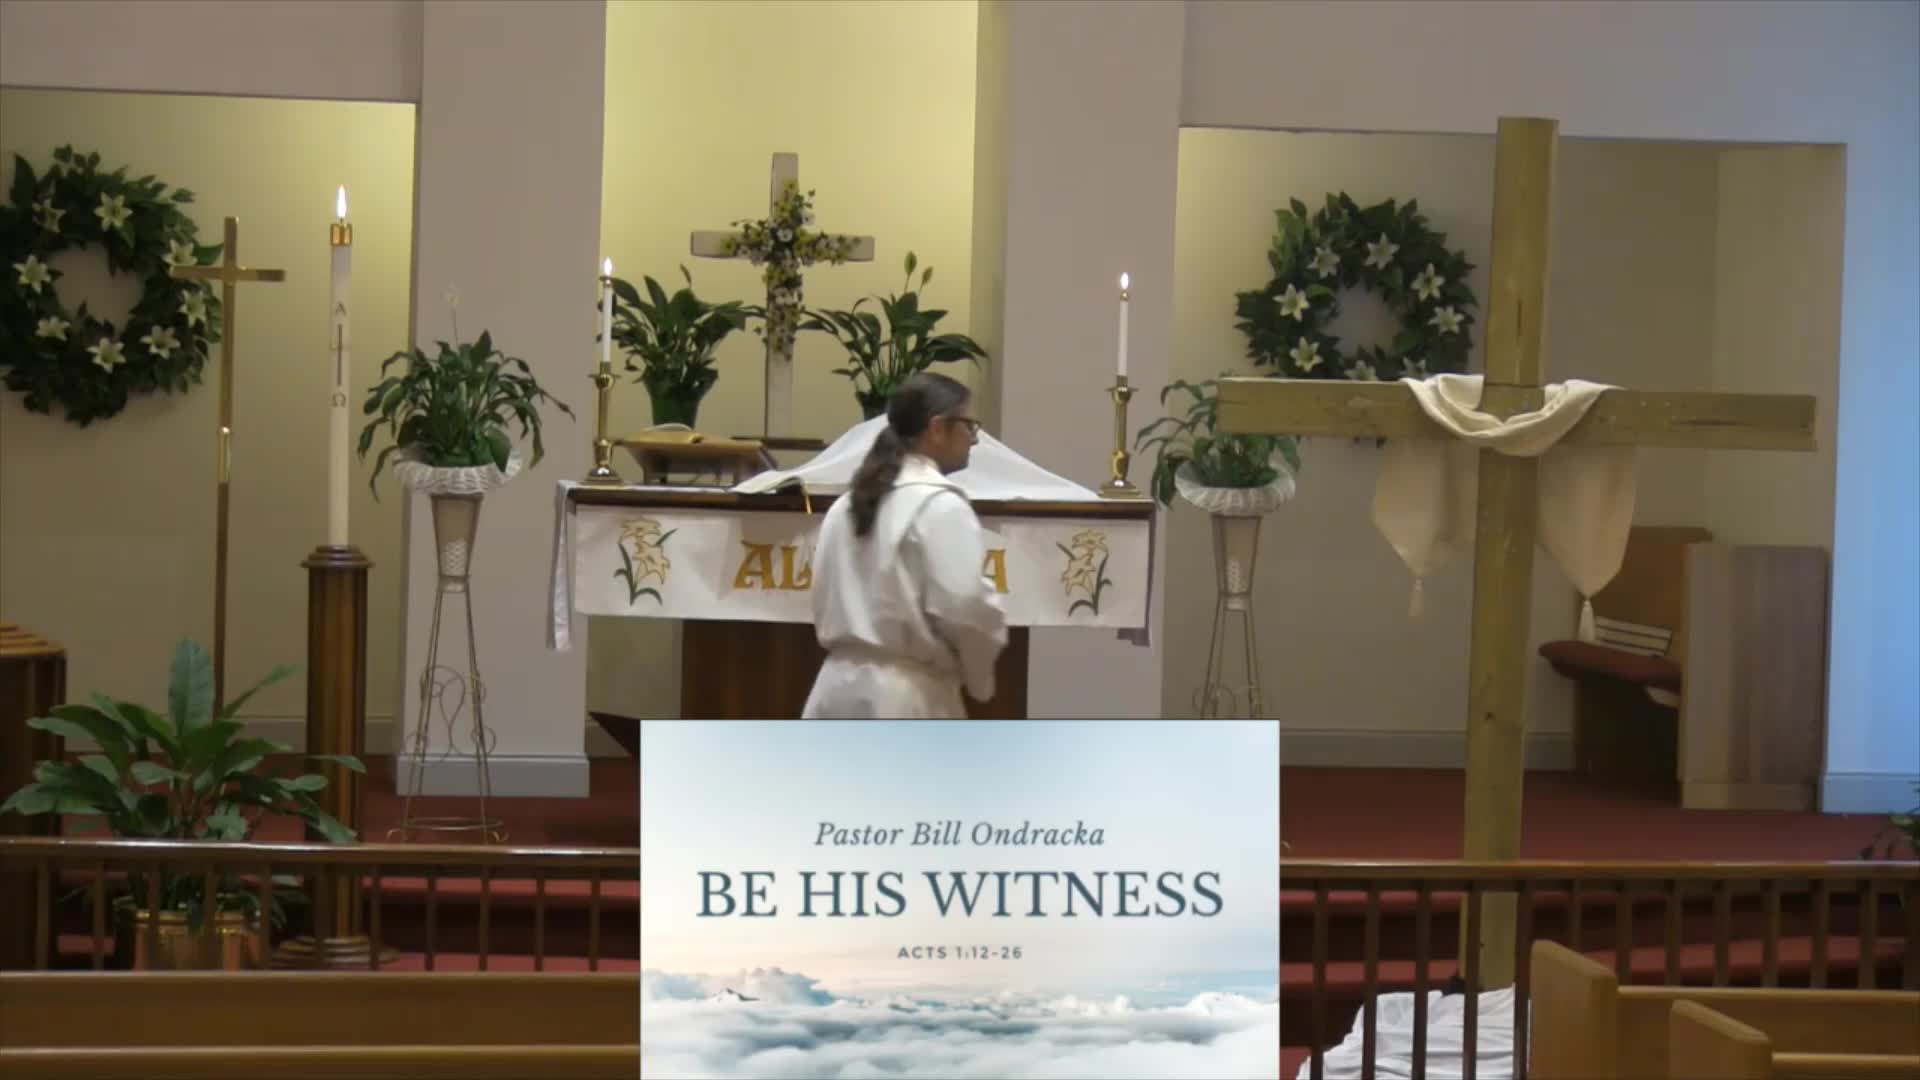 Be His Witness